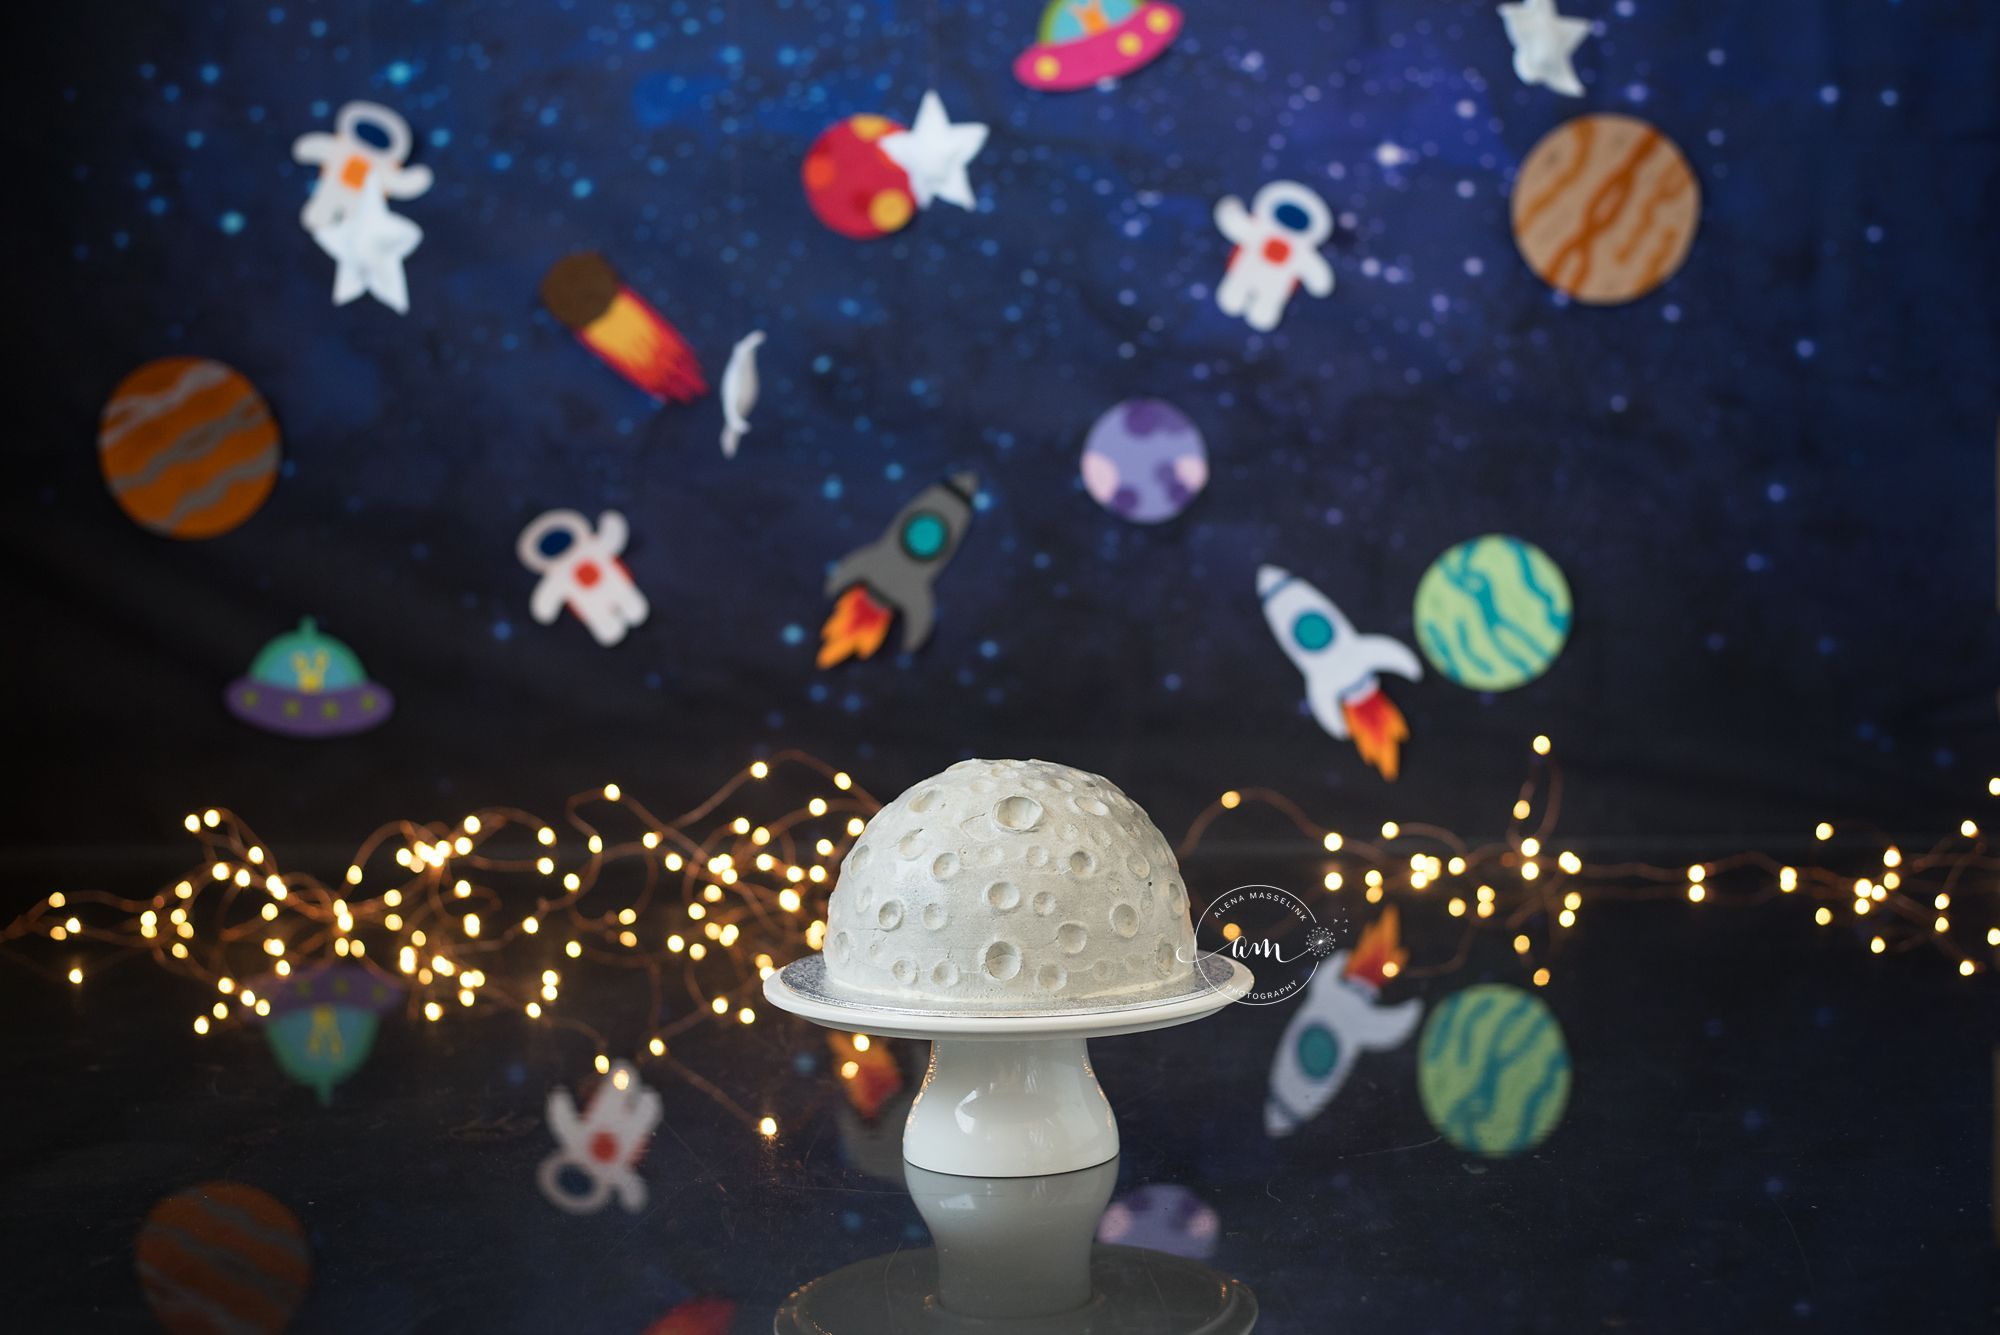 Space Themed Cake Smash Spacethemeoutfit Space Themed Cake Smash With Moon Cake Diy Decorations Planets Grad Party Decorations Cake Smash Astronaut Birthday